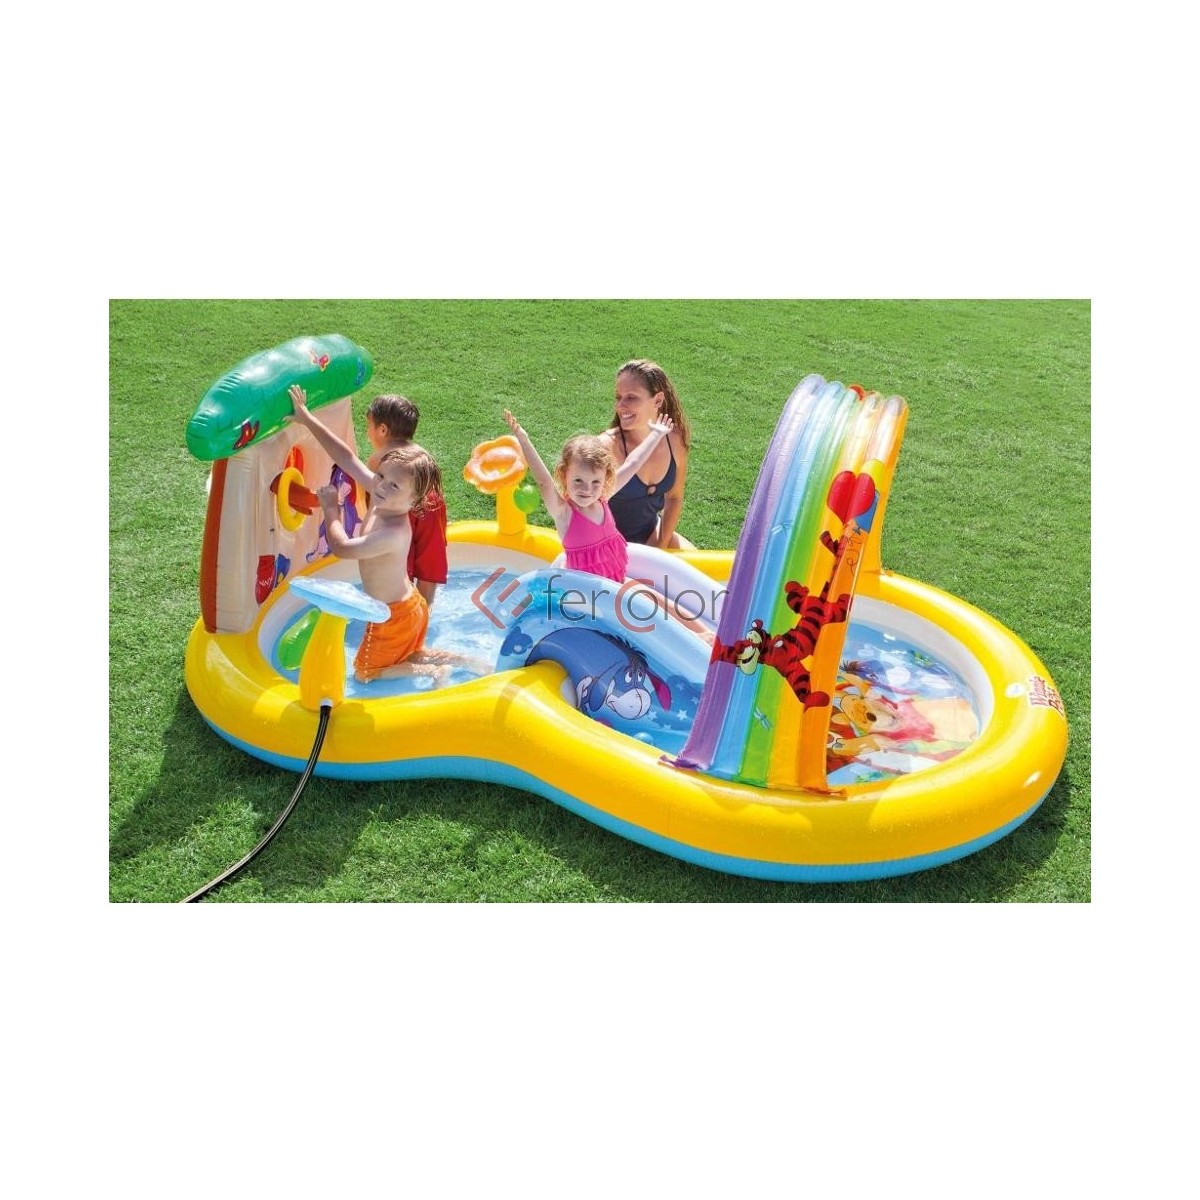 Intex Piscina Gonfiabile Piscina Gonfiabile Intex Bambini Playcenter Winnie The